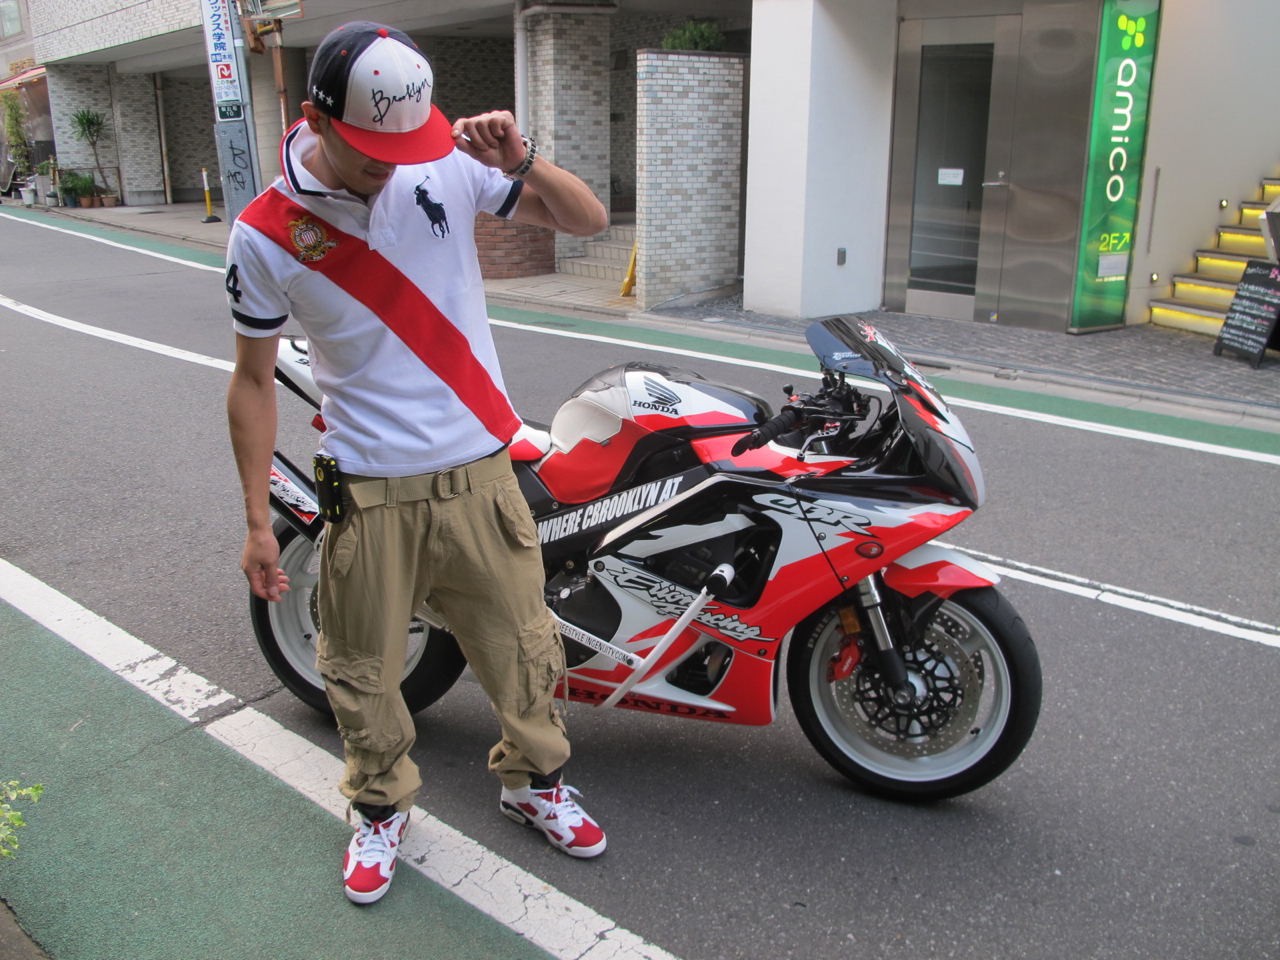 newest collection 2862c ee744 Splash of the Day: Kuts from Urban Ryders rocking Carmines ...